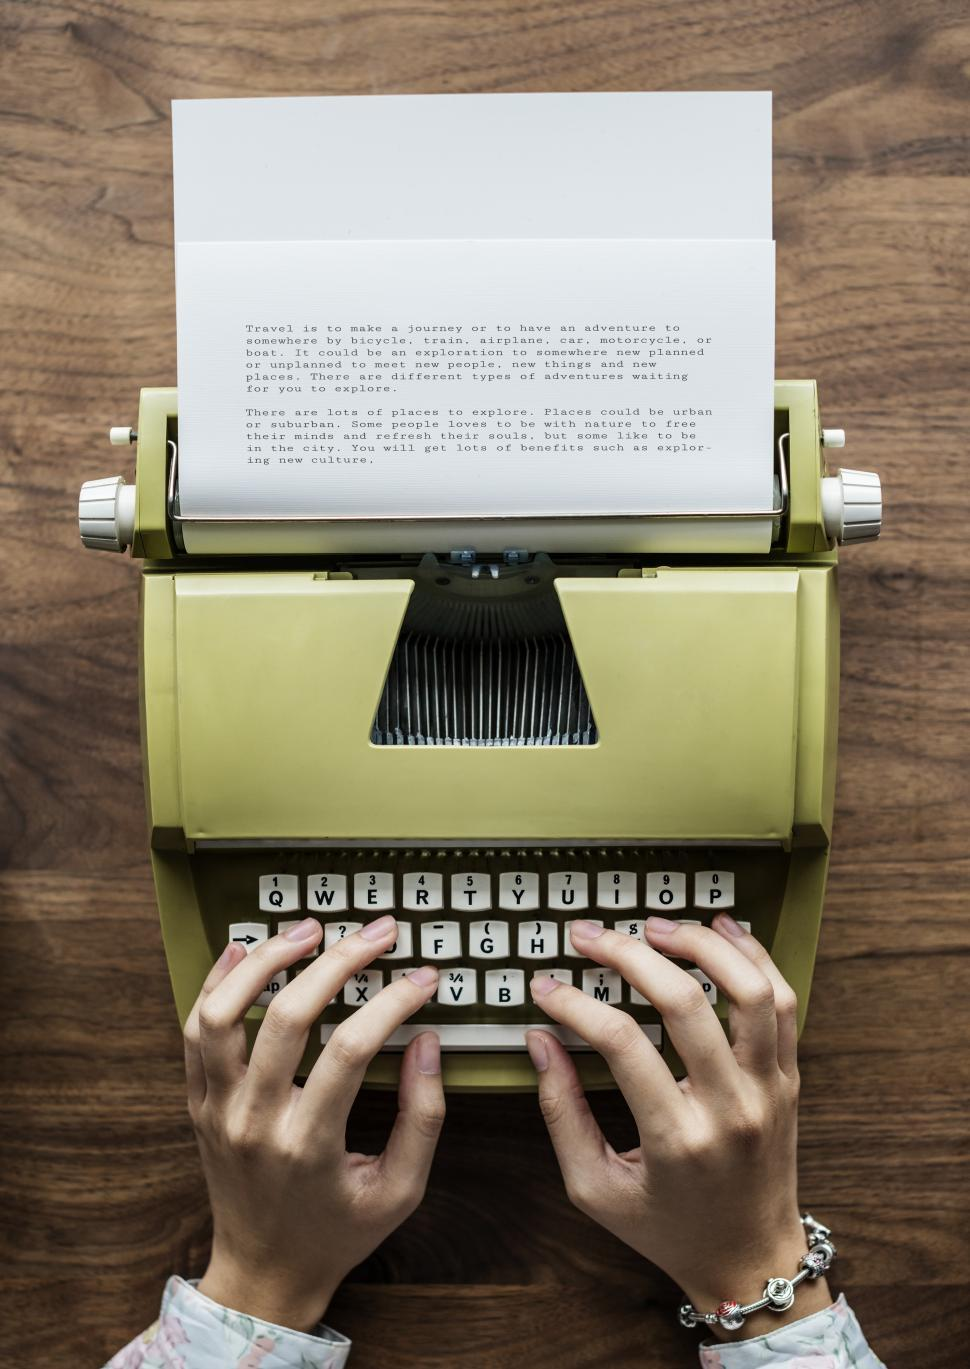 Download Free Stock HD Photo of Overhead view of hands typing a letter on a typewriter Online